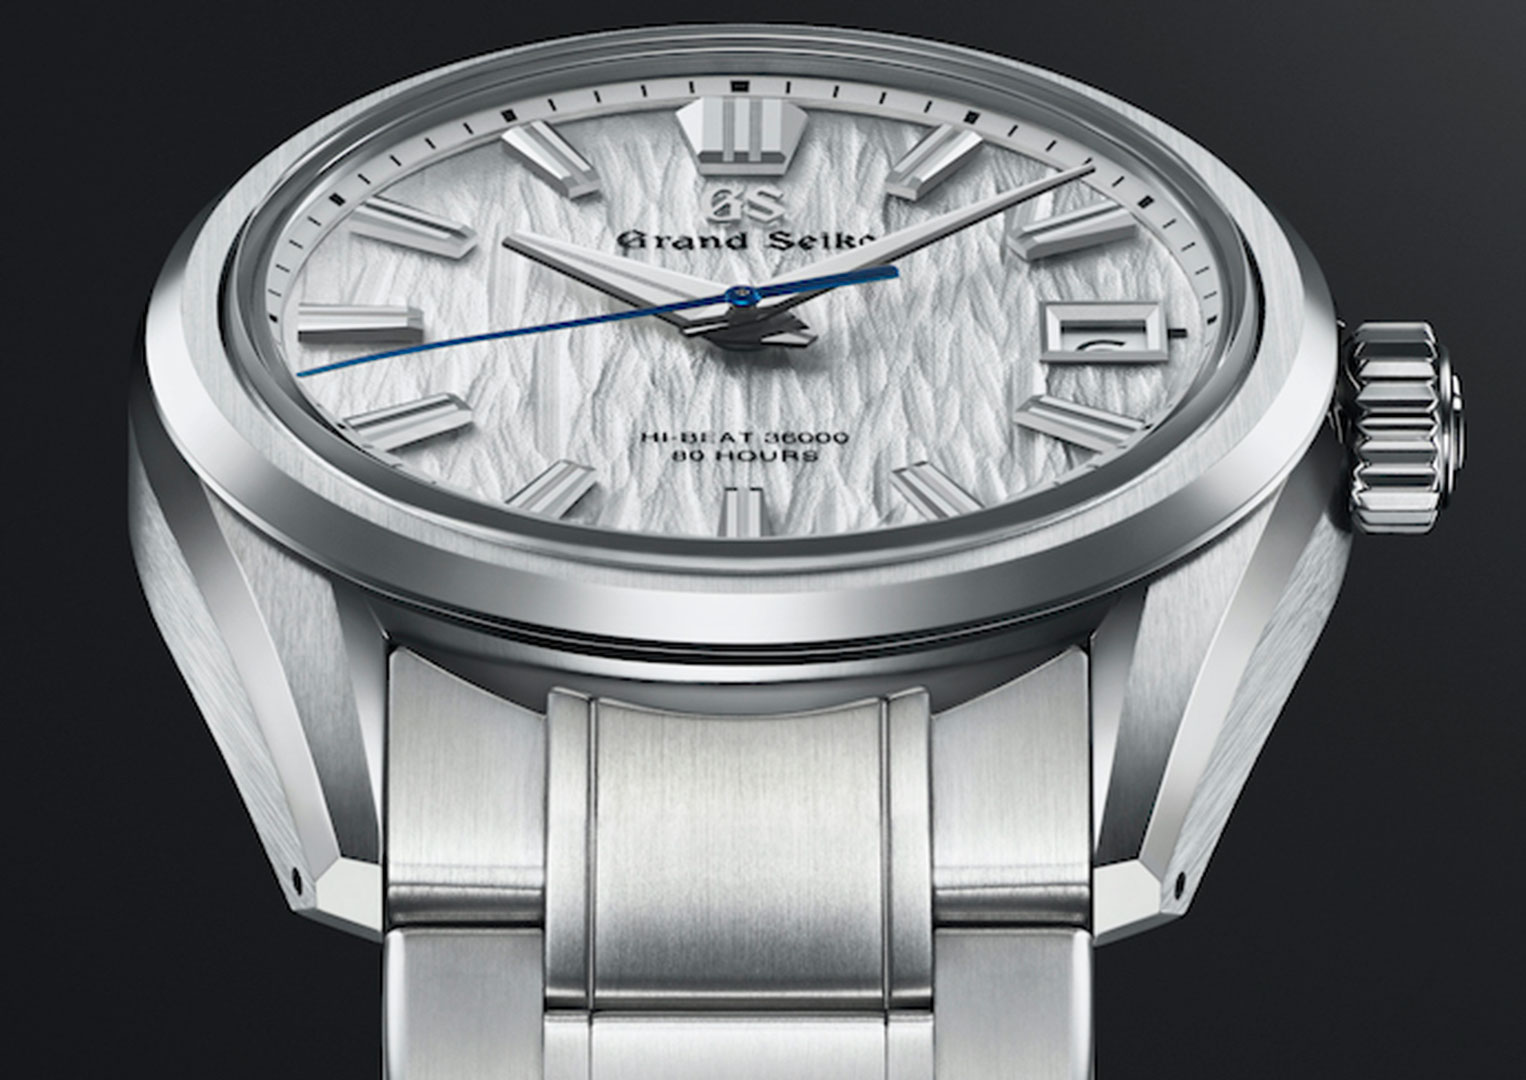 The Shinshu Watch Studio made the world's first quartz watch, the Seiko Astron, released in December 1969